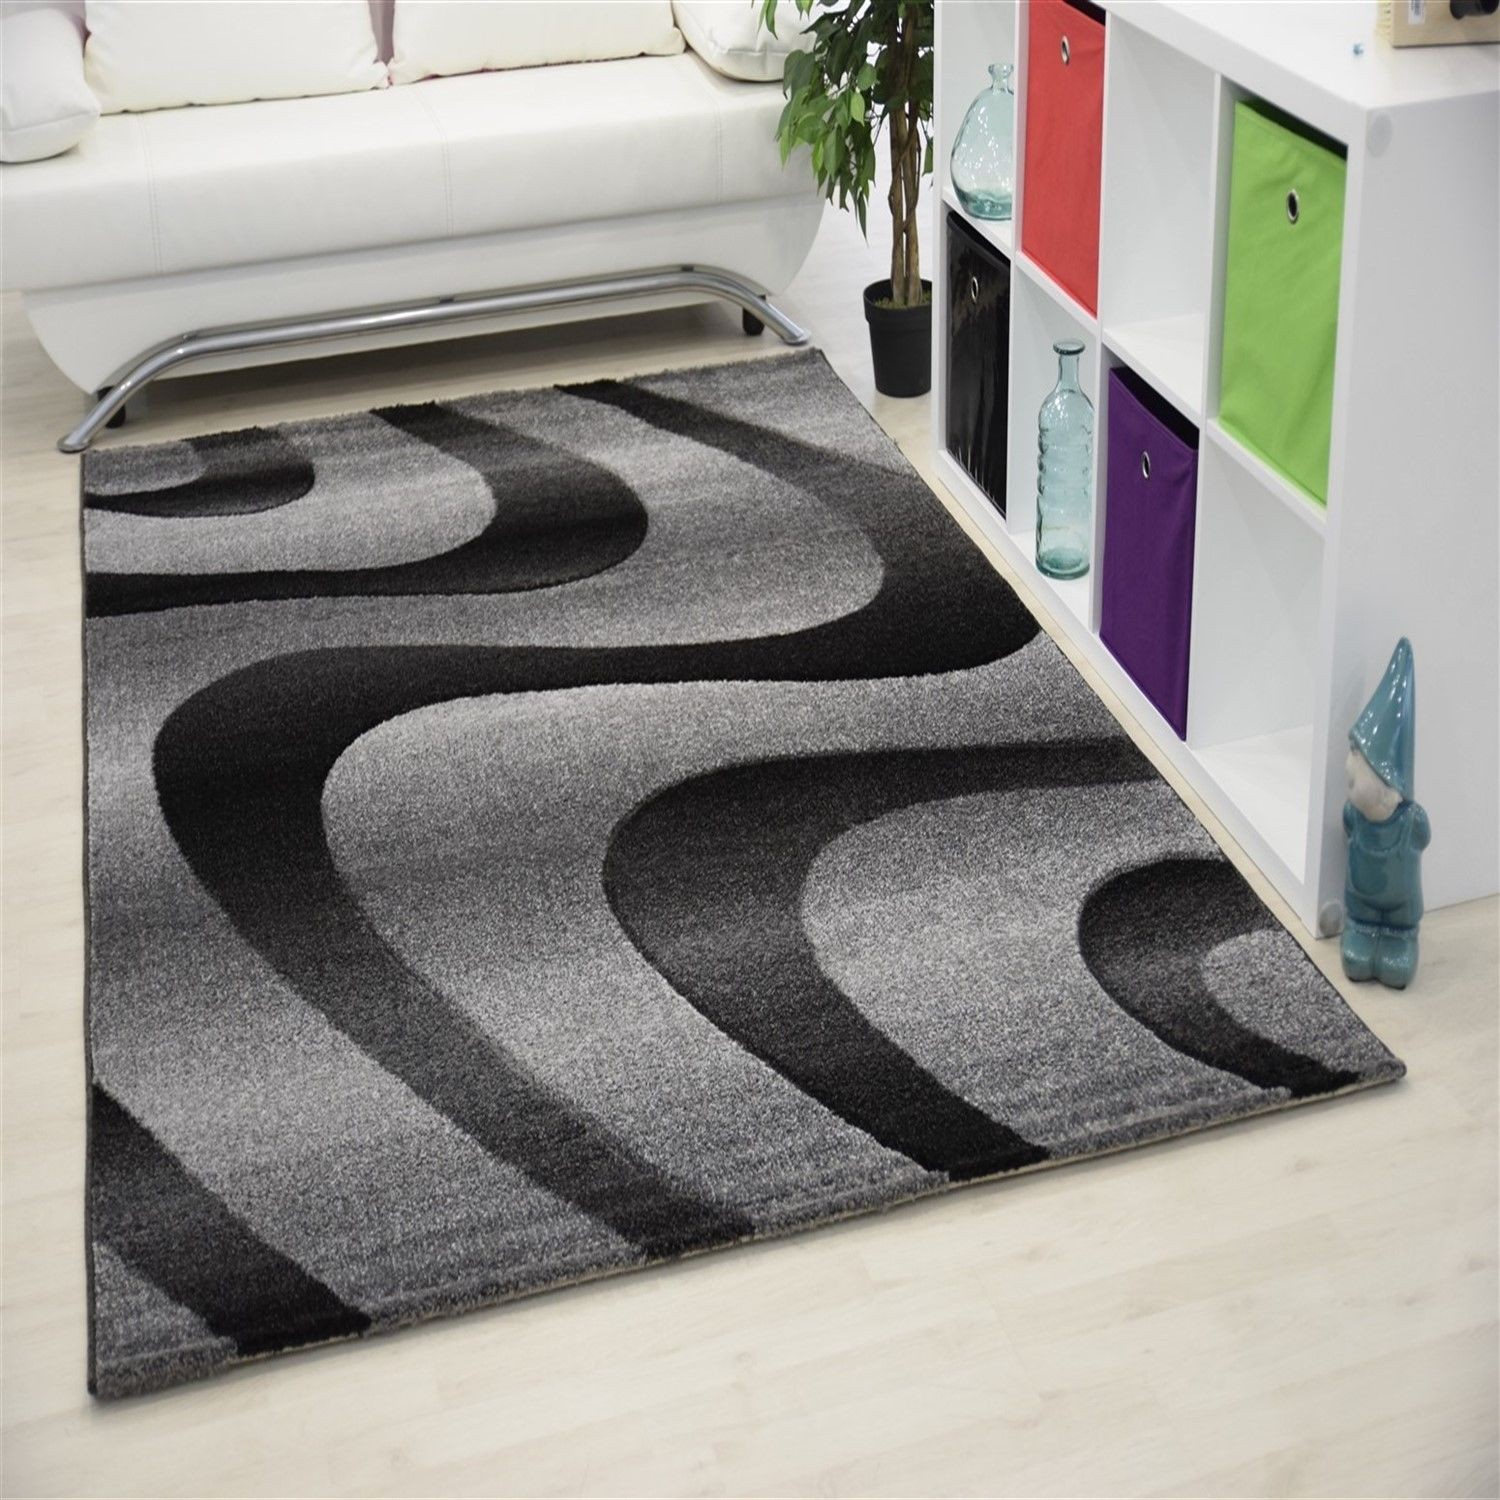 tapis pour salon id es de d coration int rieure french decor. Black Bedroom Furniture Sets. Home Design Ideas